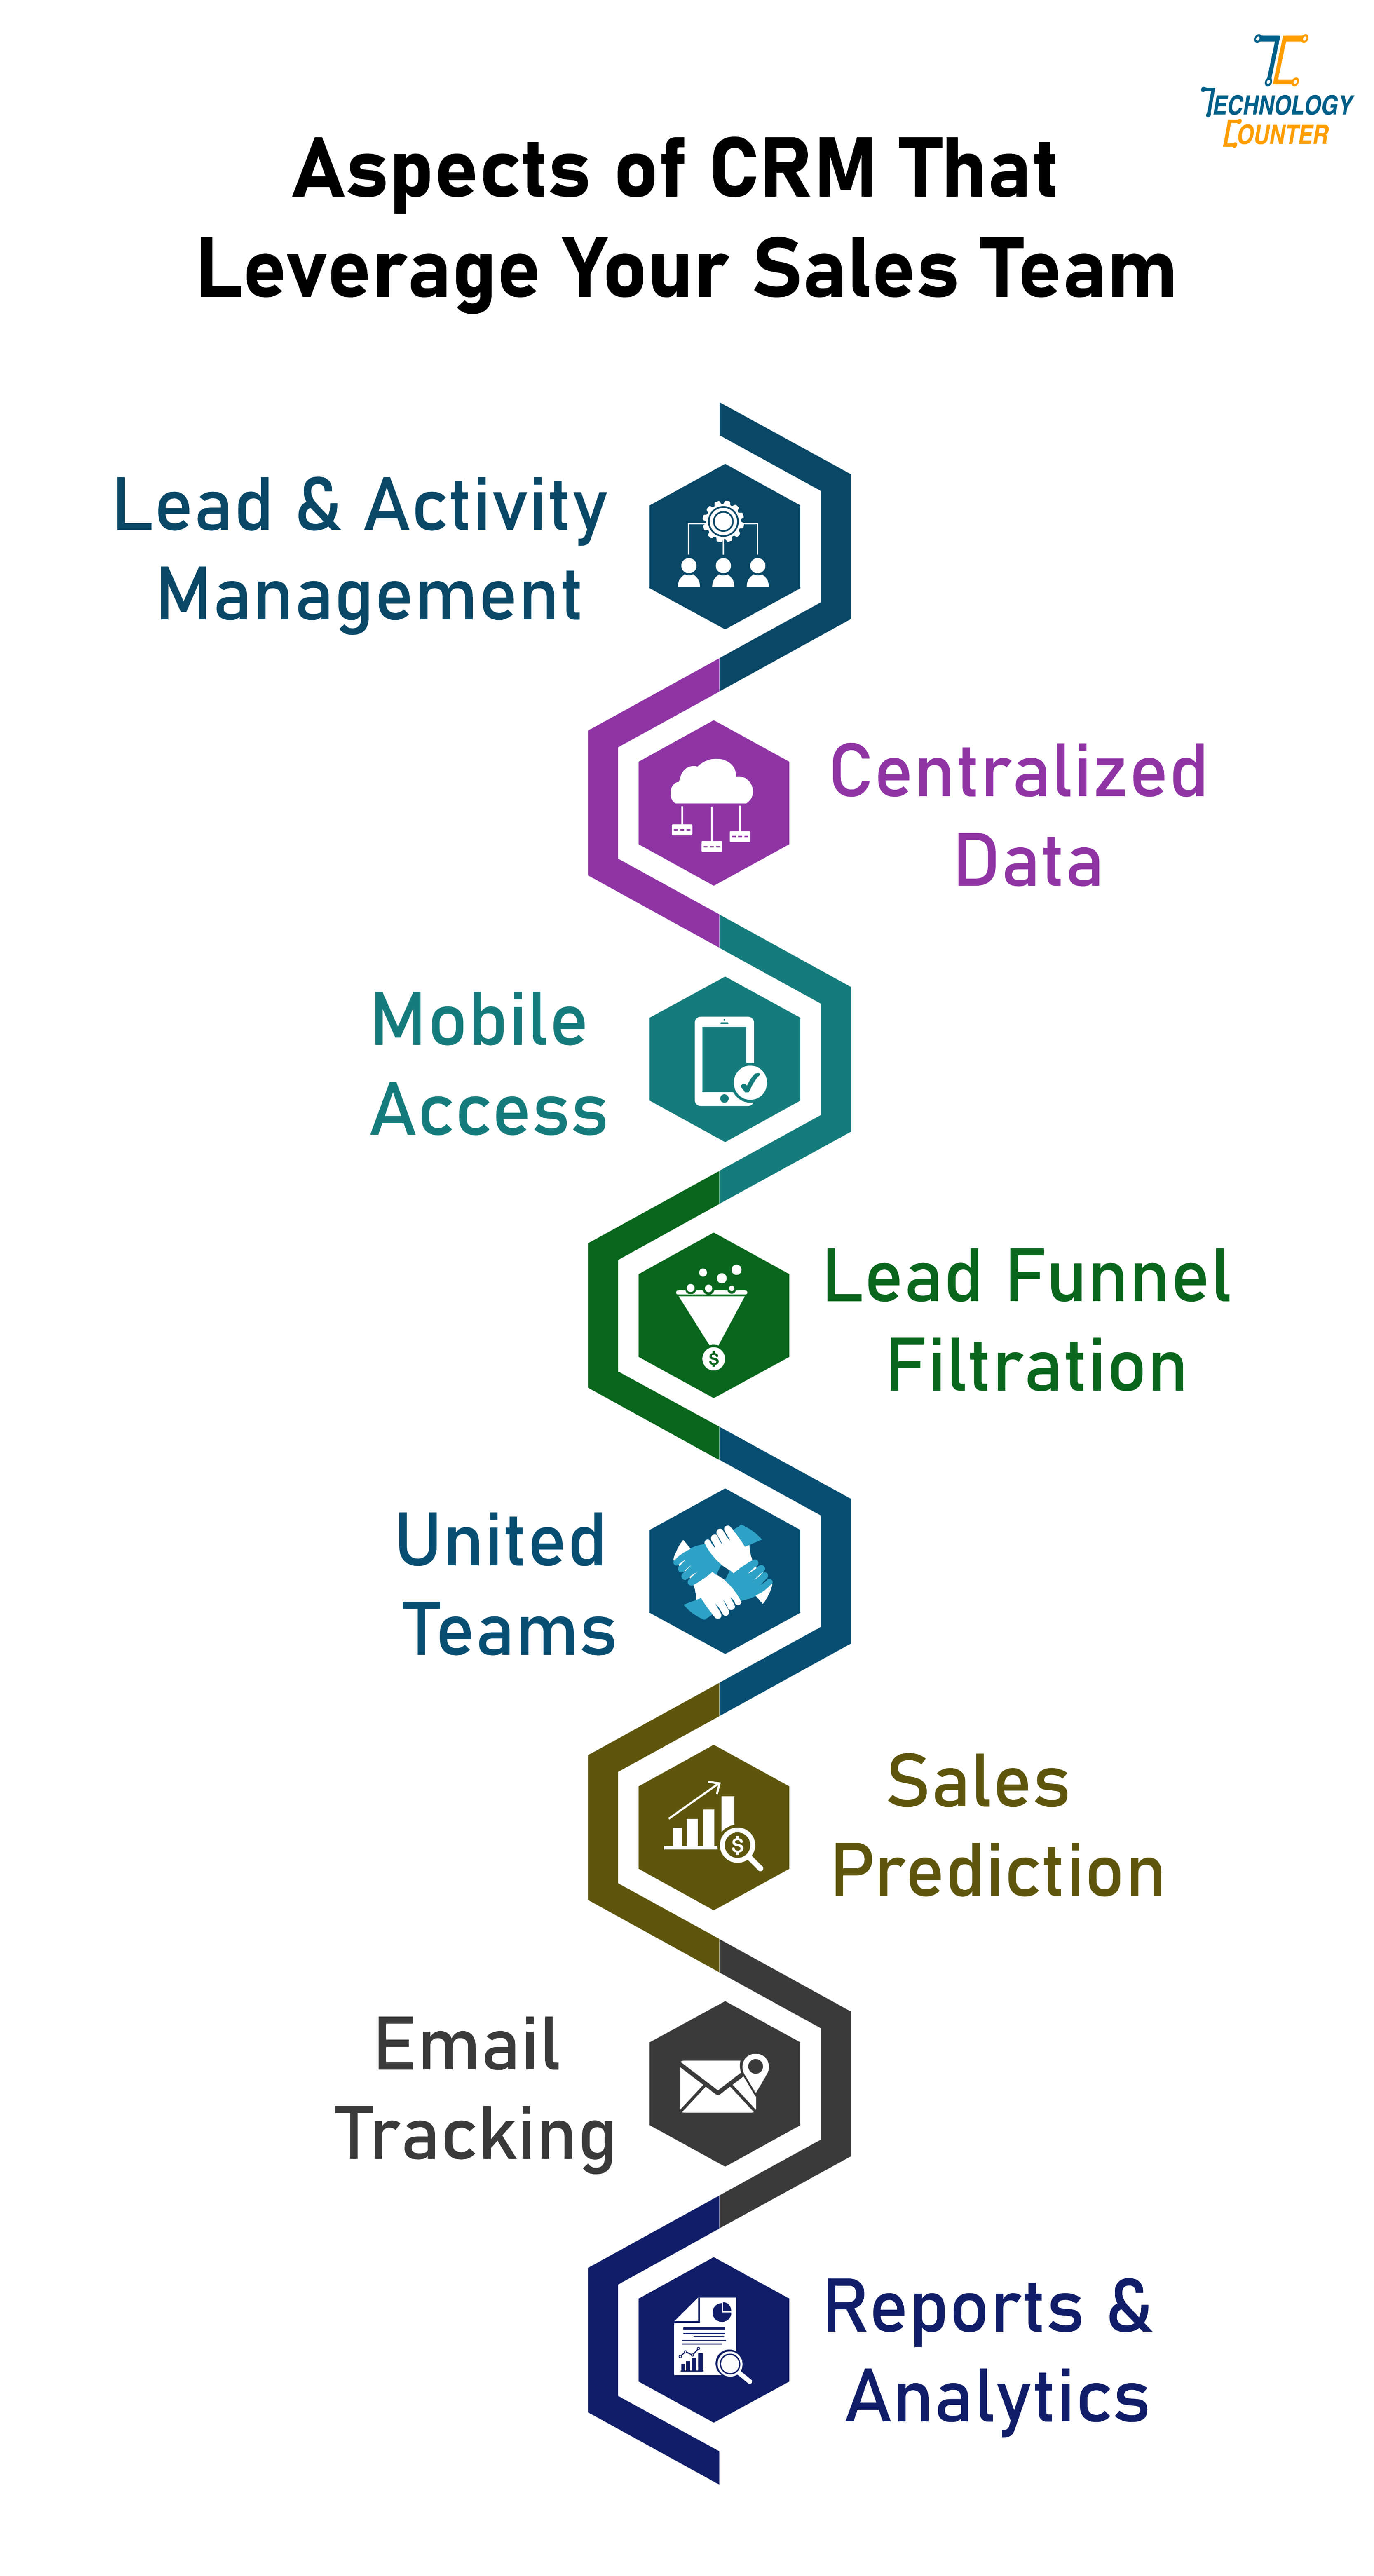 Aspects of CRM that leverage your sales team